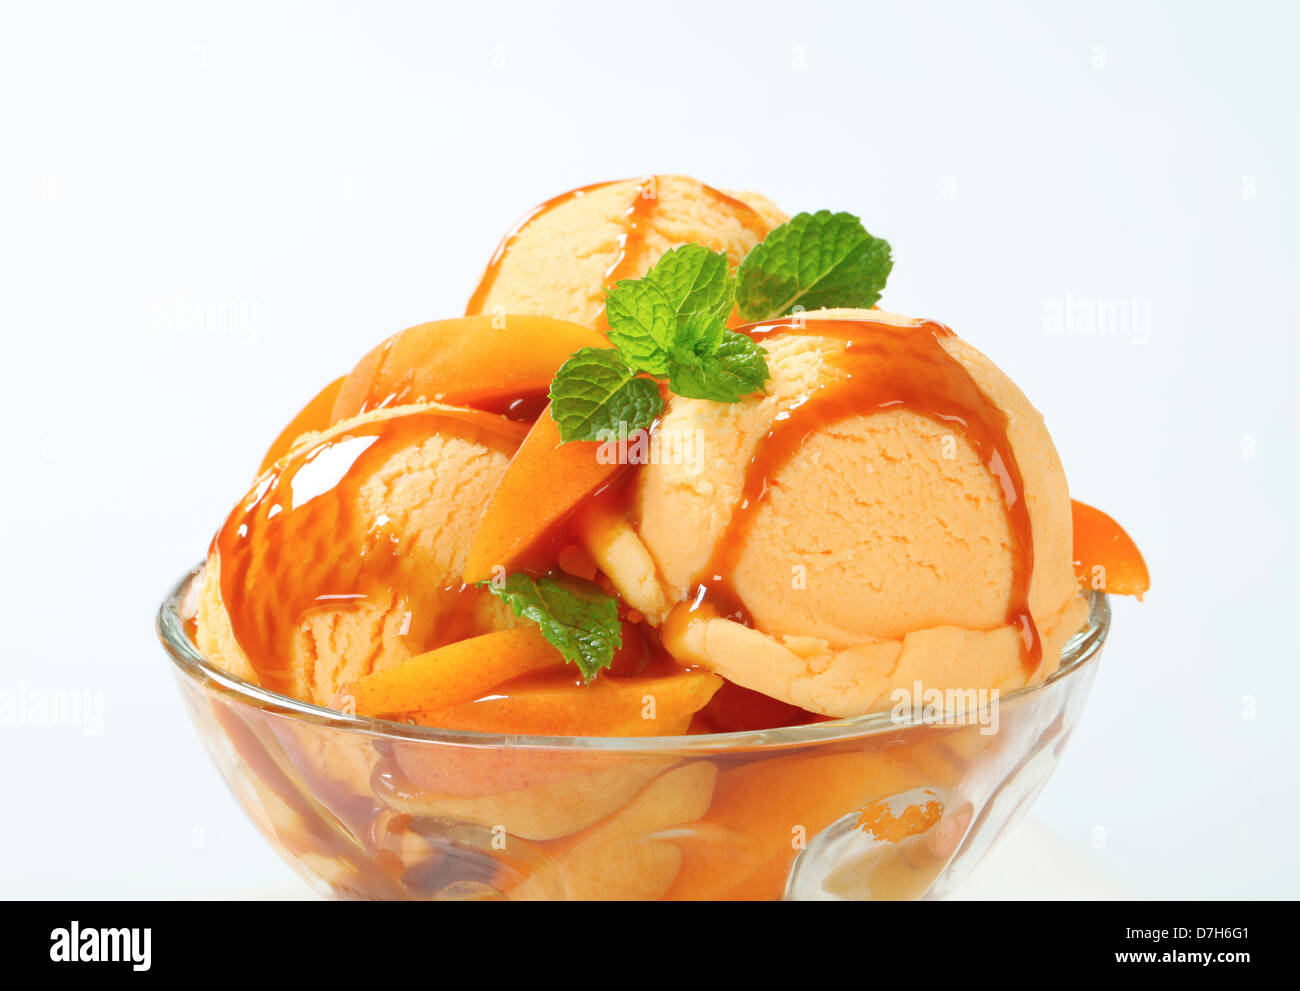 Ice cream with fresh apricot and caramel sauce - Stock Image